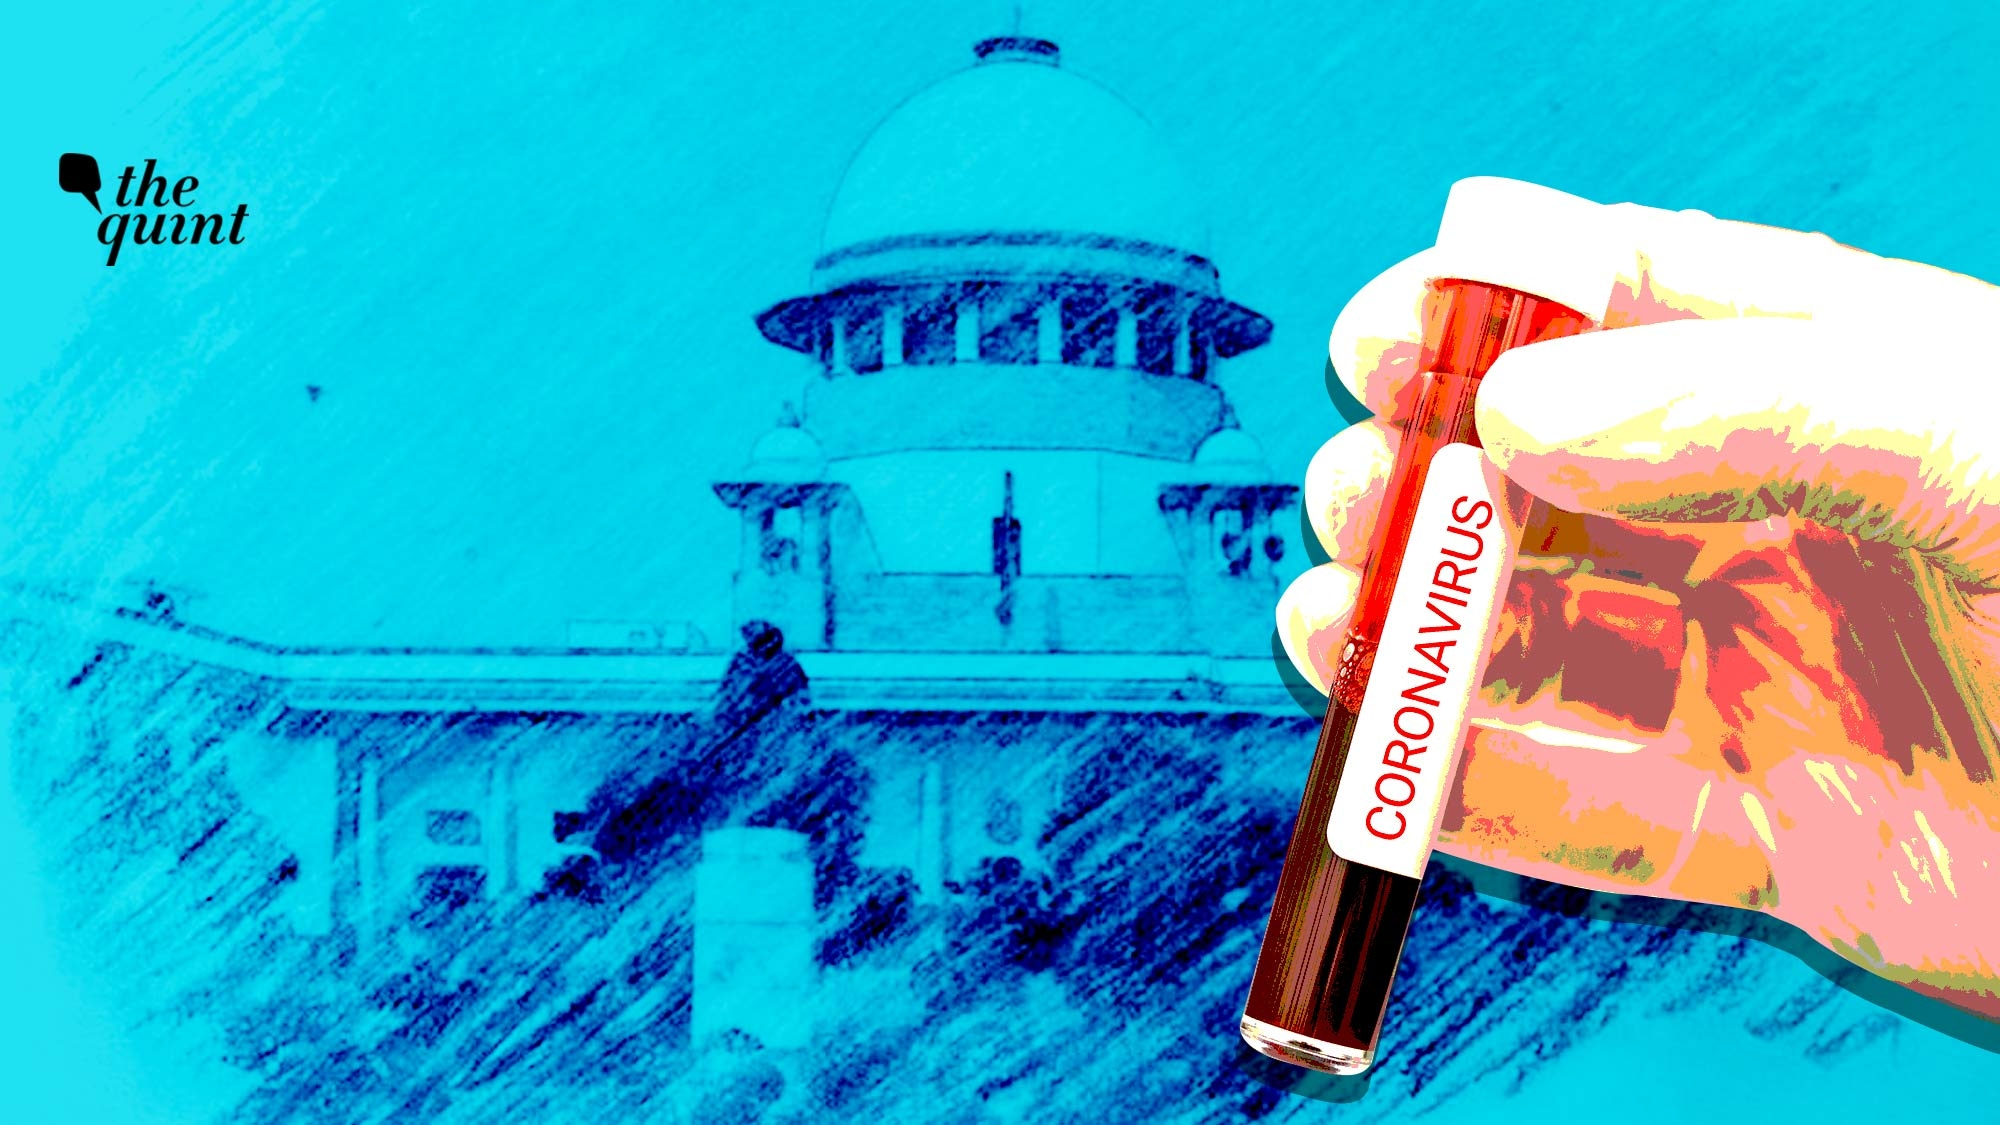 Ordering Free COVID Tests in Private Labs: Did SC Overstep Powers?